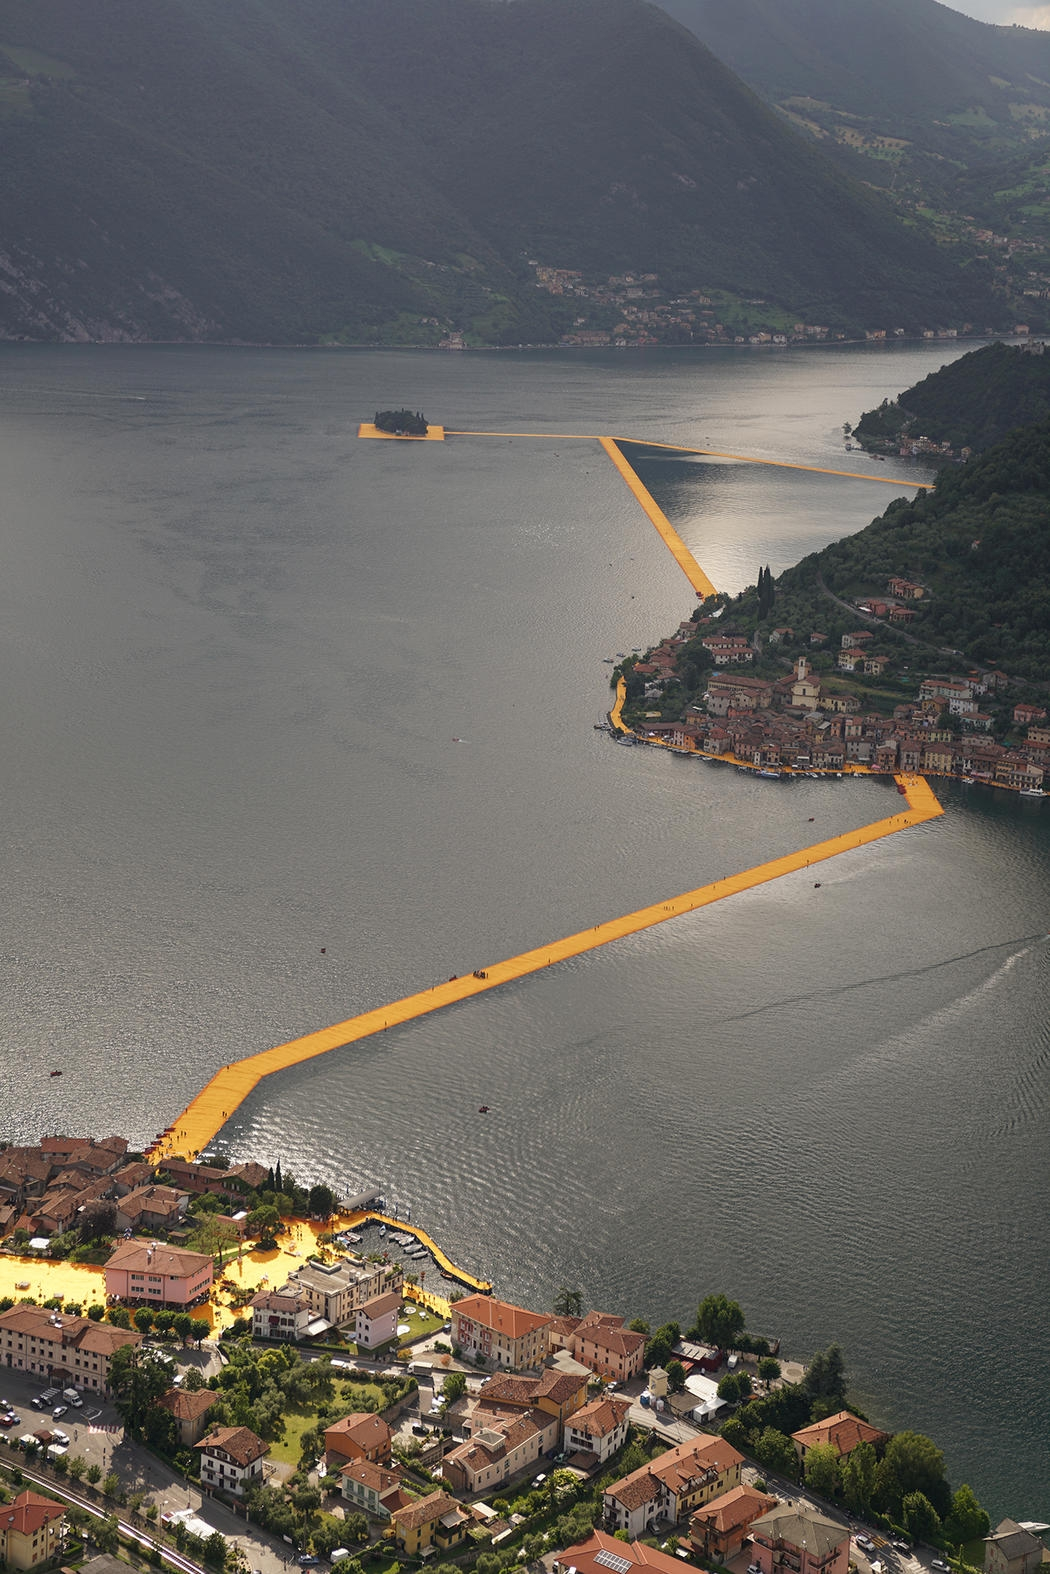 21-Christo-and-Jeanne-Claude-The-Floating-Piers-Walkways-on-Lake-Iseo-Italy-www-designstack-co